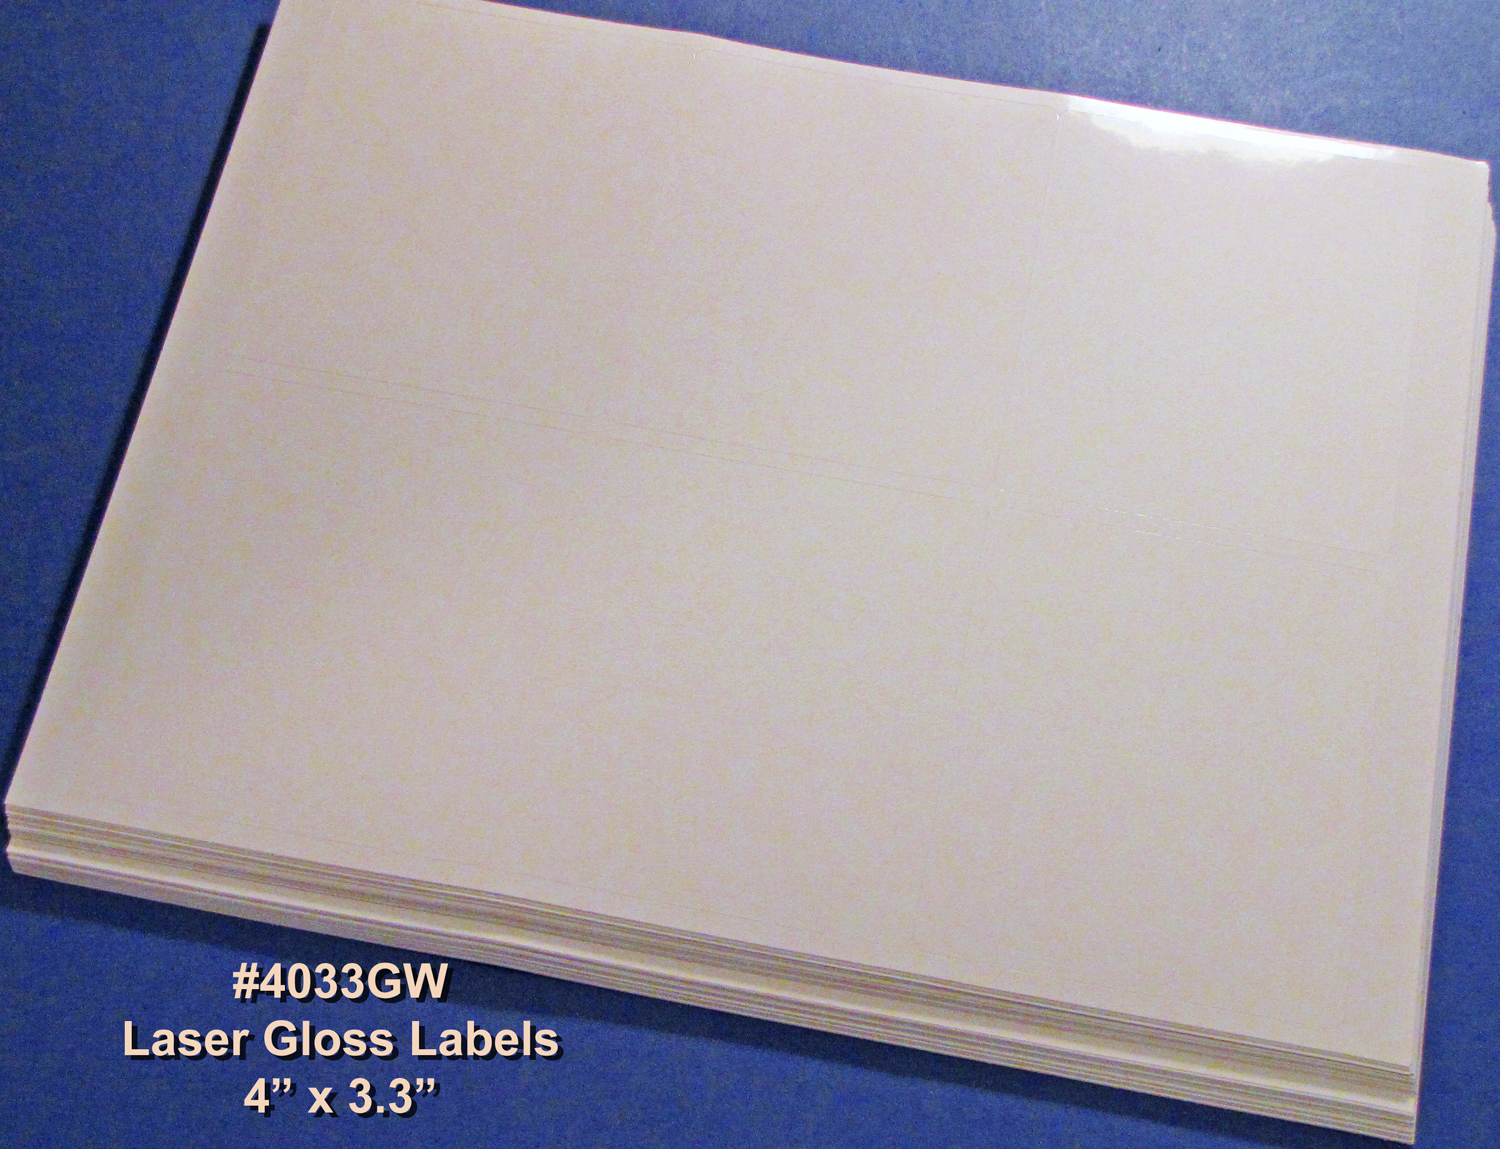 4 X 3 1 3 Inch Labels Laser Glossy White 50 Sheets 4033gw